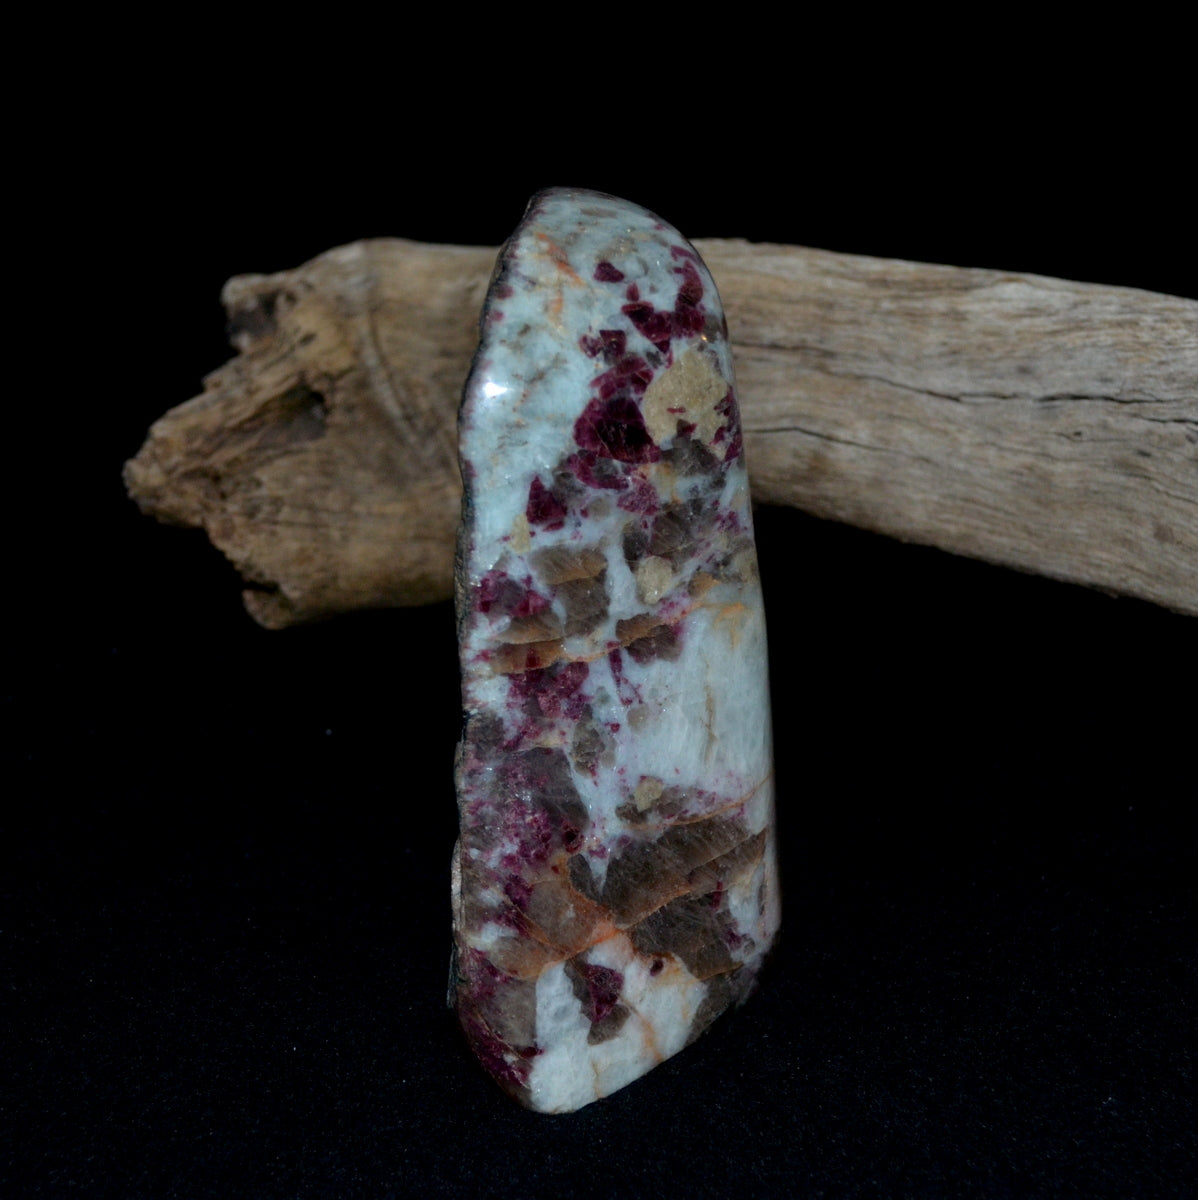 Eudialyte Polished Freeform - Harmony Grounding Balancing - Buy Now at Illiom Crystals - Afterpay Available